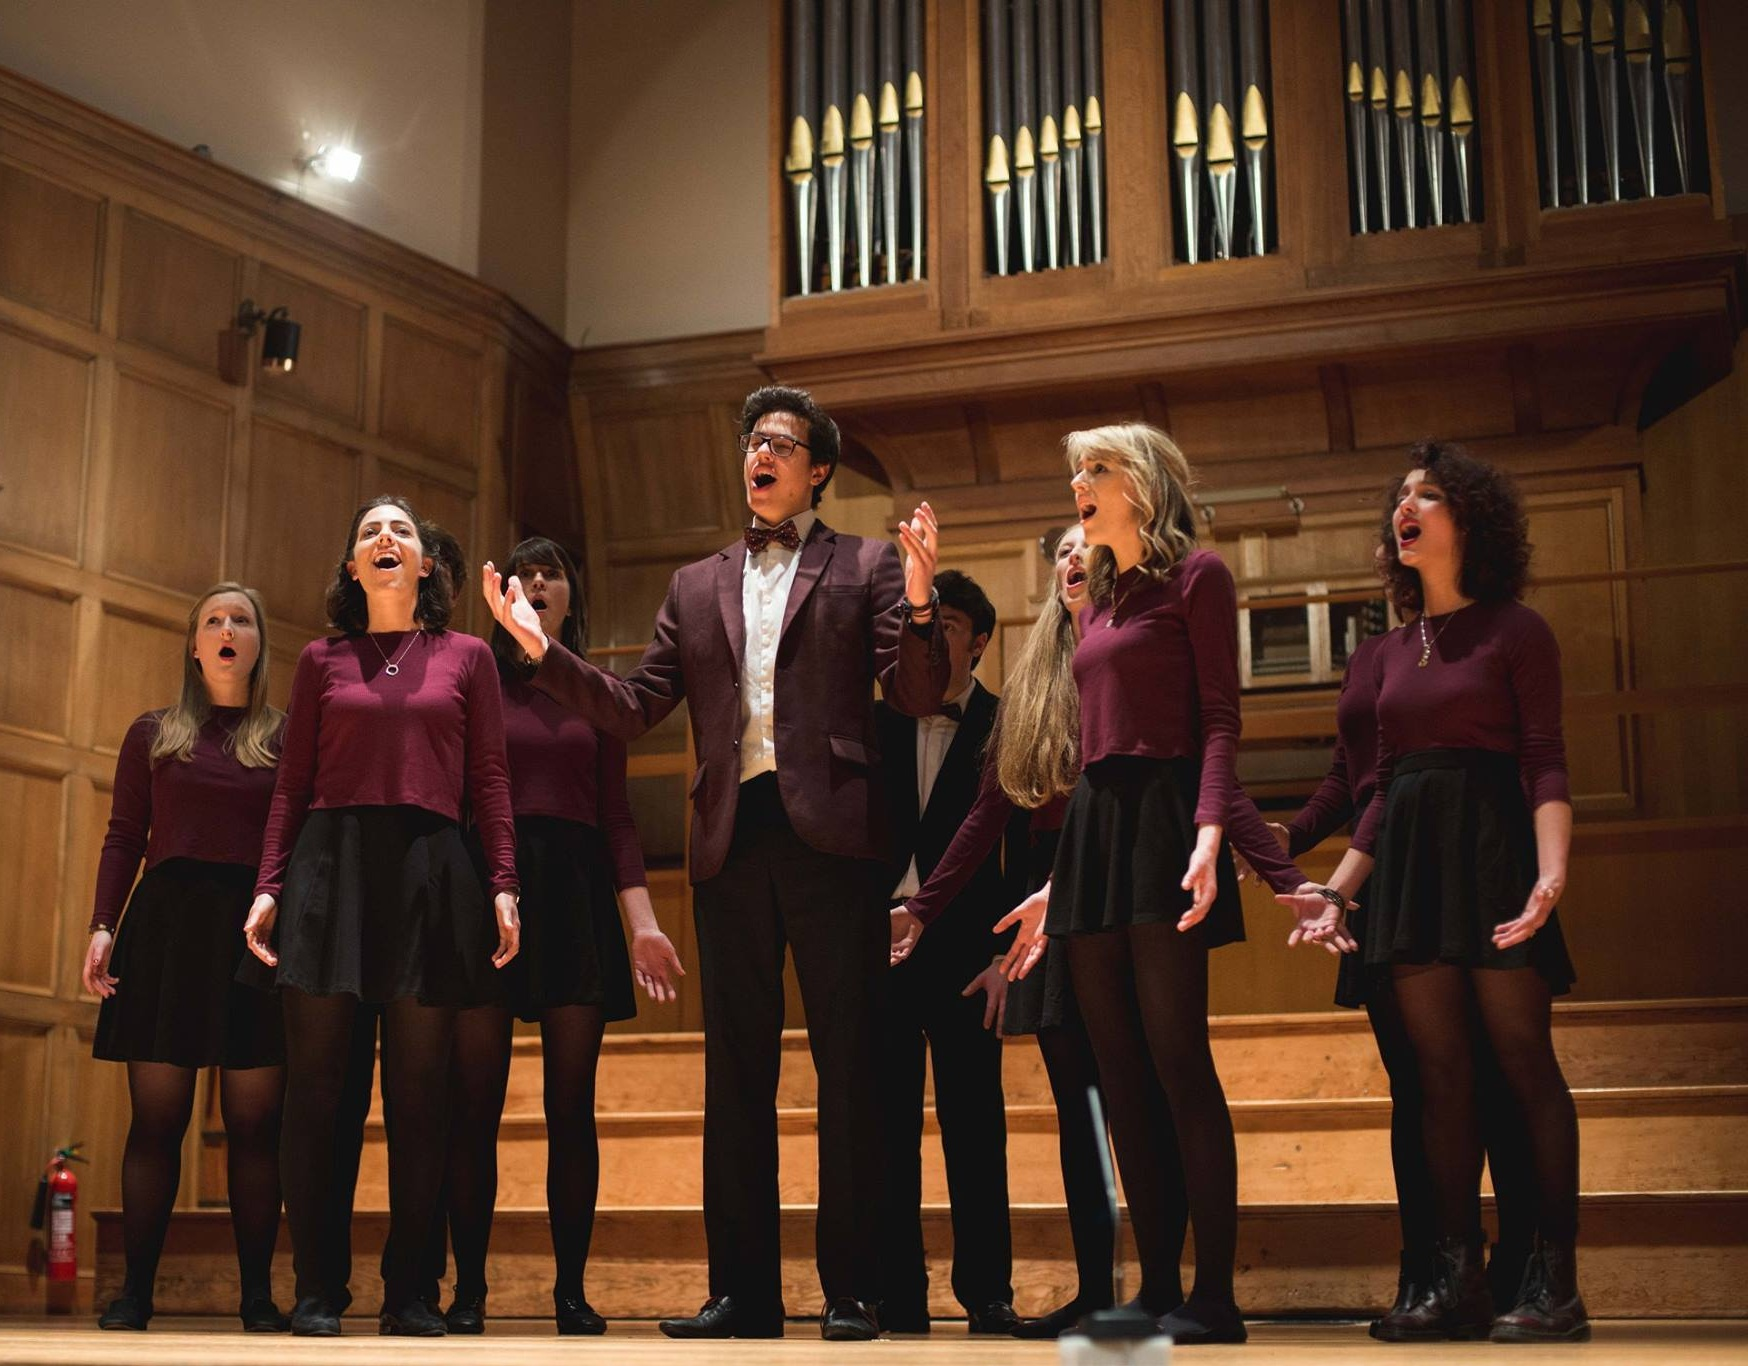 St Andrews plays host to a number of internationally-acclaimed contemporary A Cappella groups. -